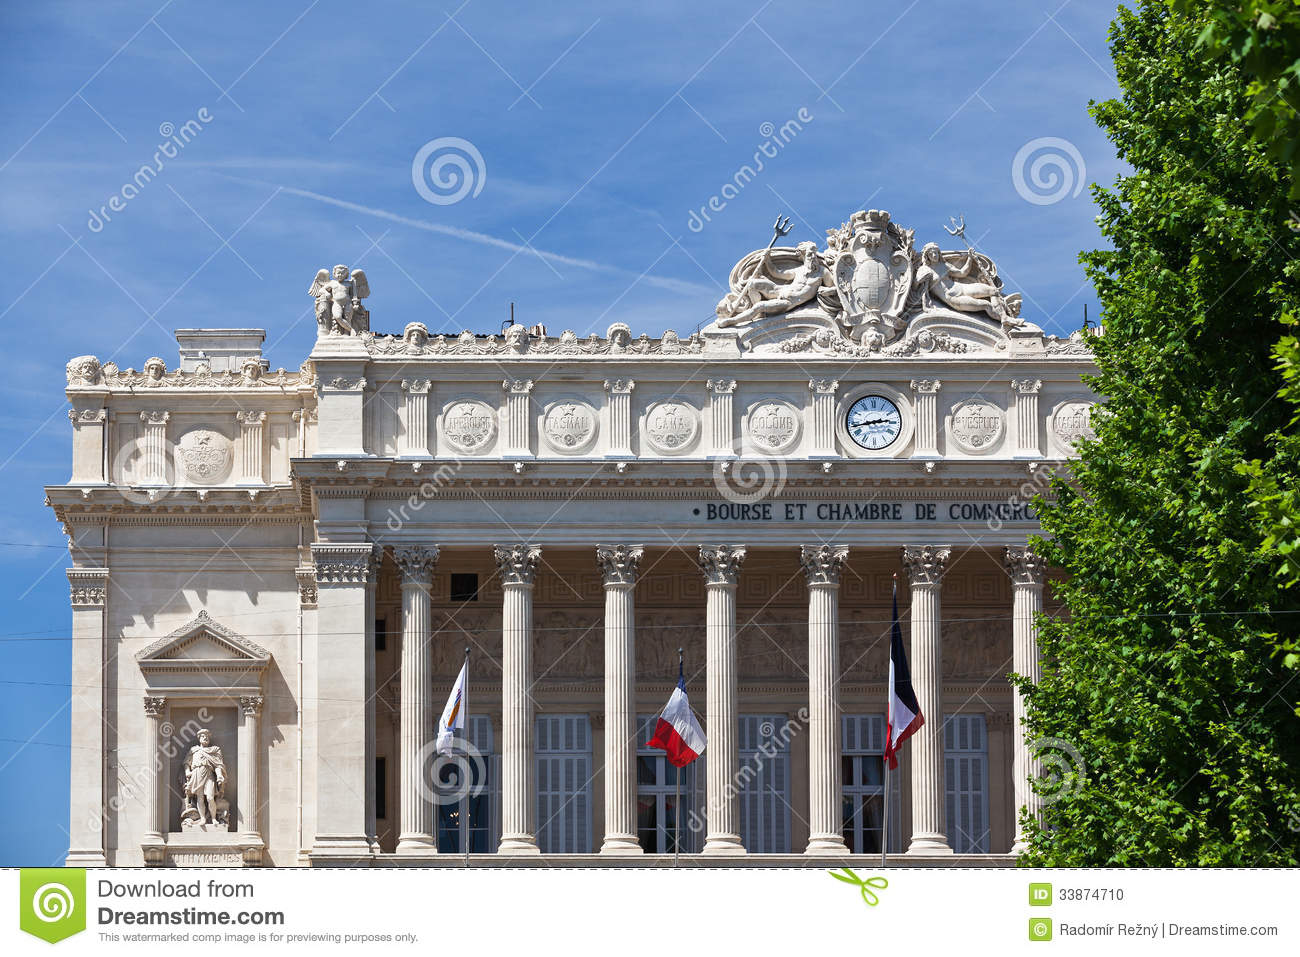 Bourse et chambre de commerce in marseille stock photo - Chambre de commerce et d industrie marseille ...